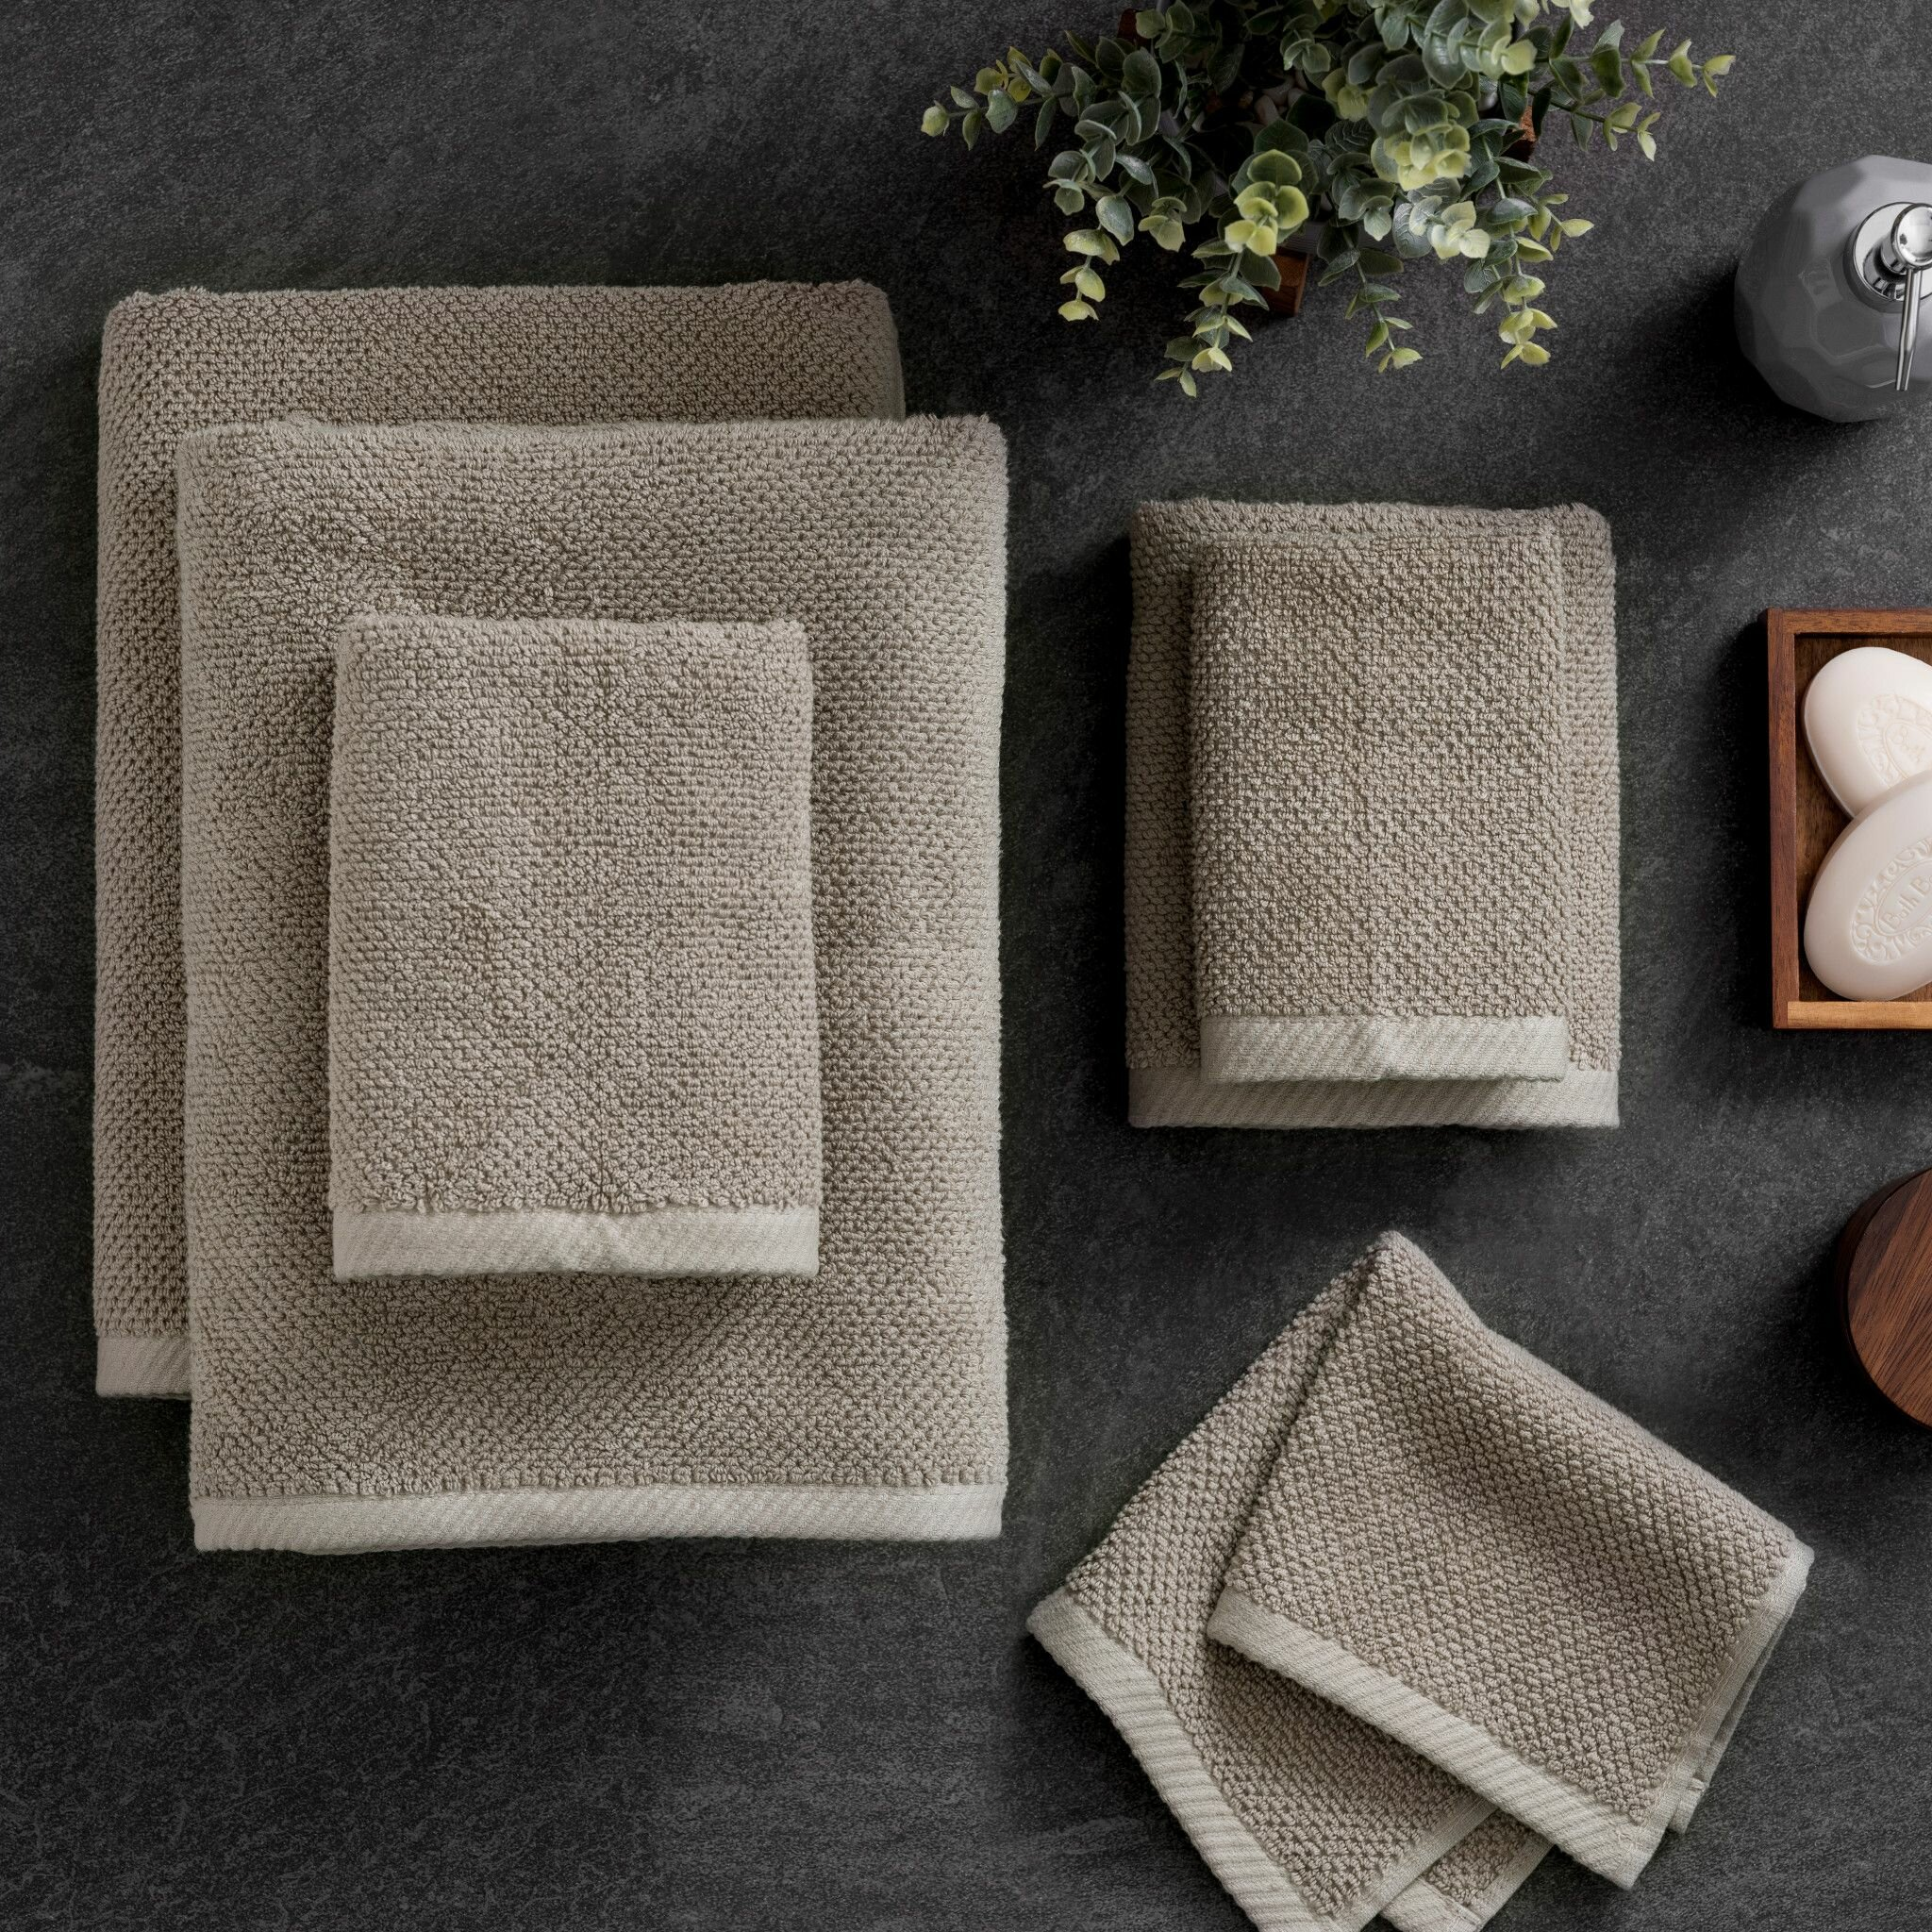 Combed Cotton Towels SPA Sheared Border 100/% Pure Cotton 550gsm Linen